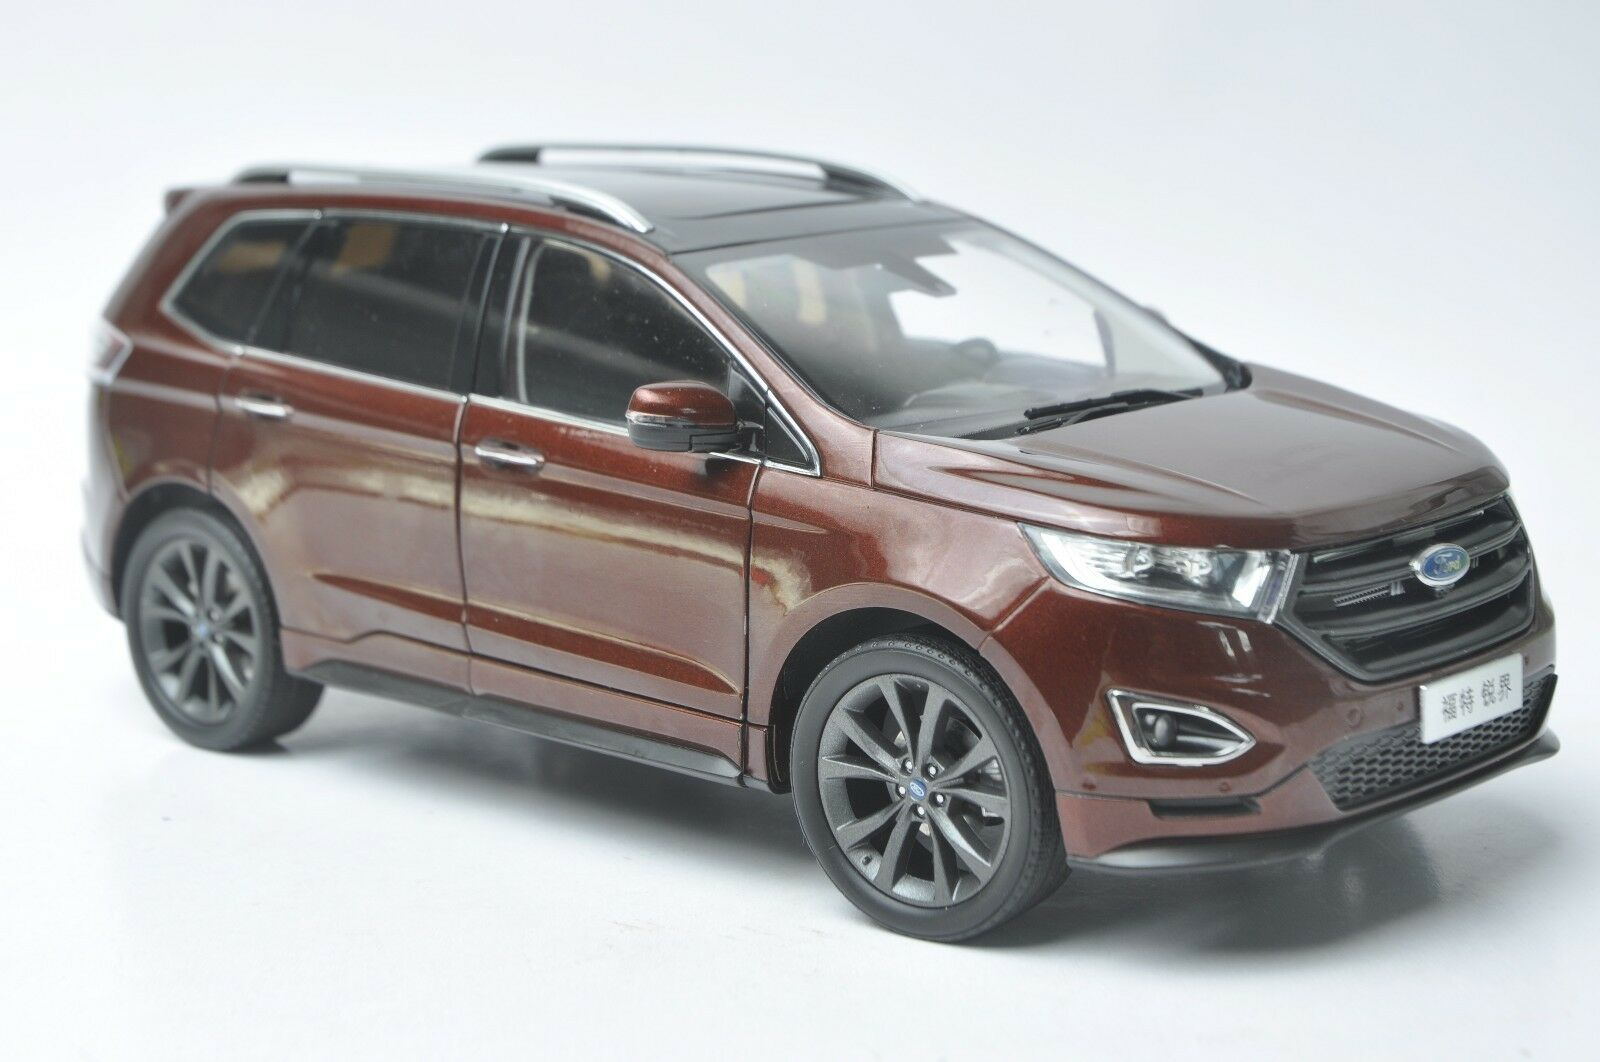 ford edge 2015 suv model in scale 1 18 red cad. Black Bedroom Furniture Sets. Home Design Ideas